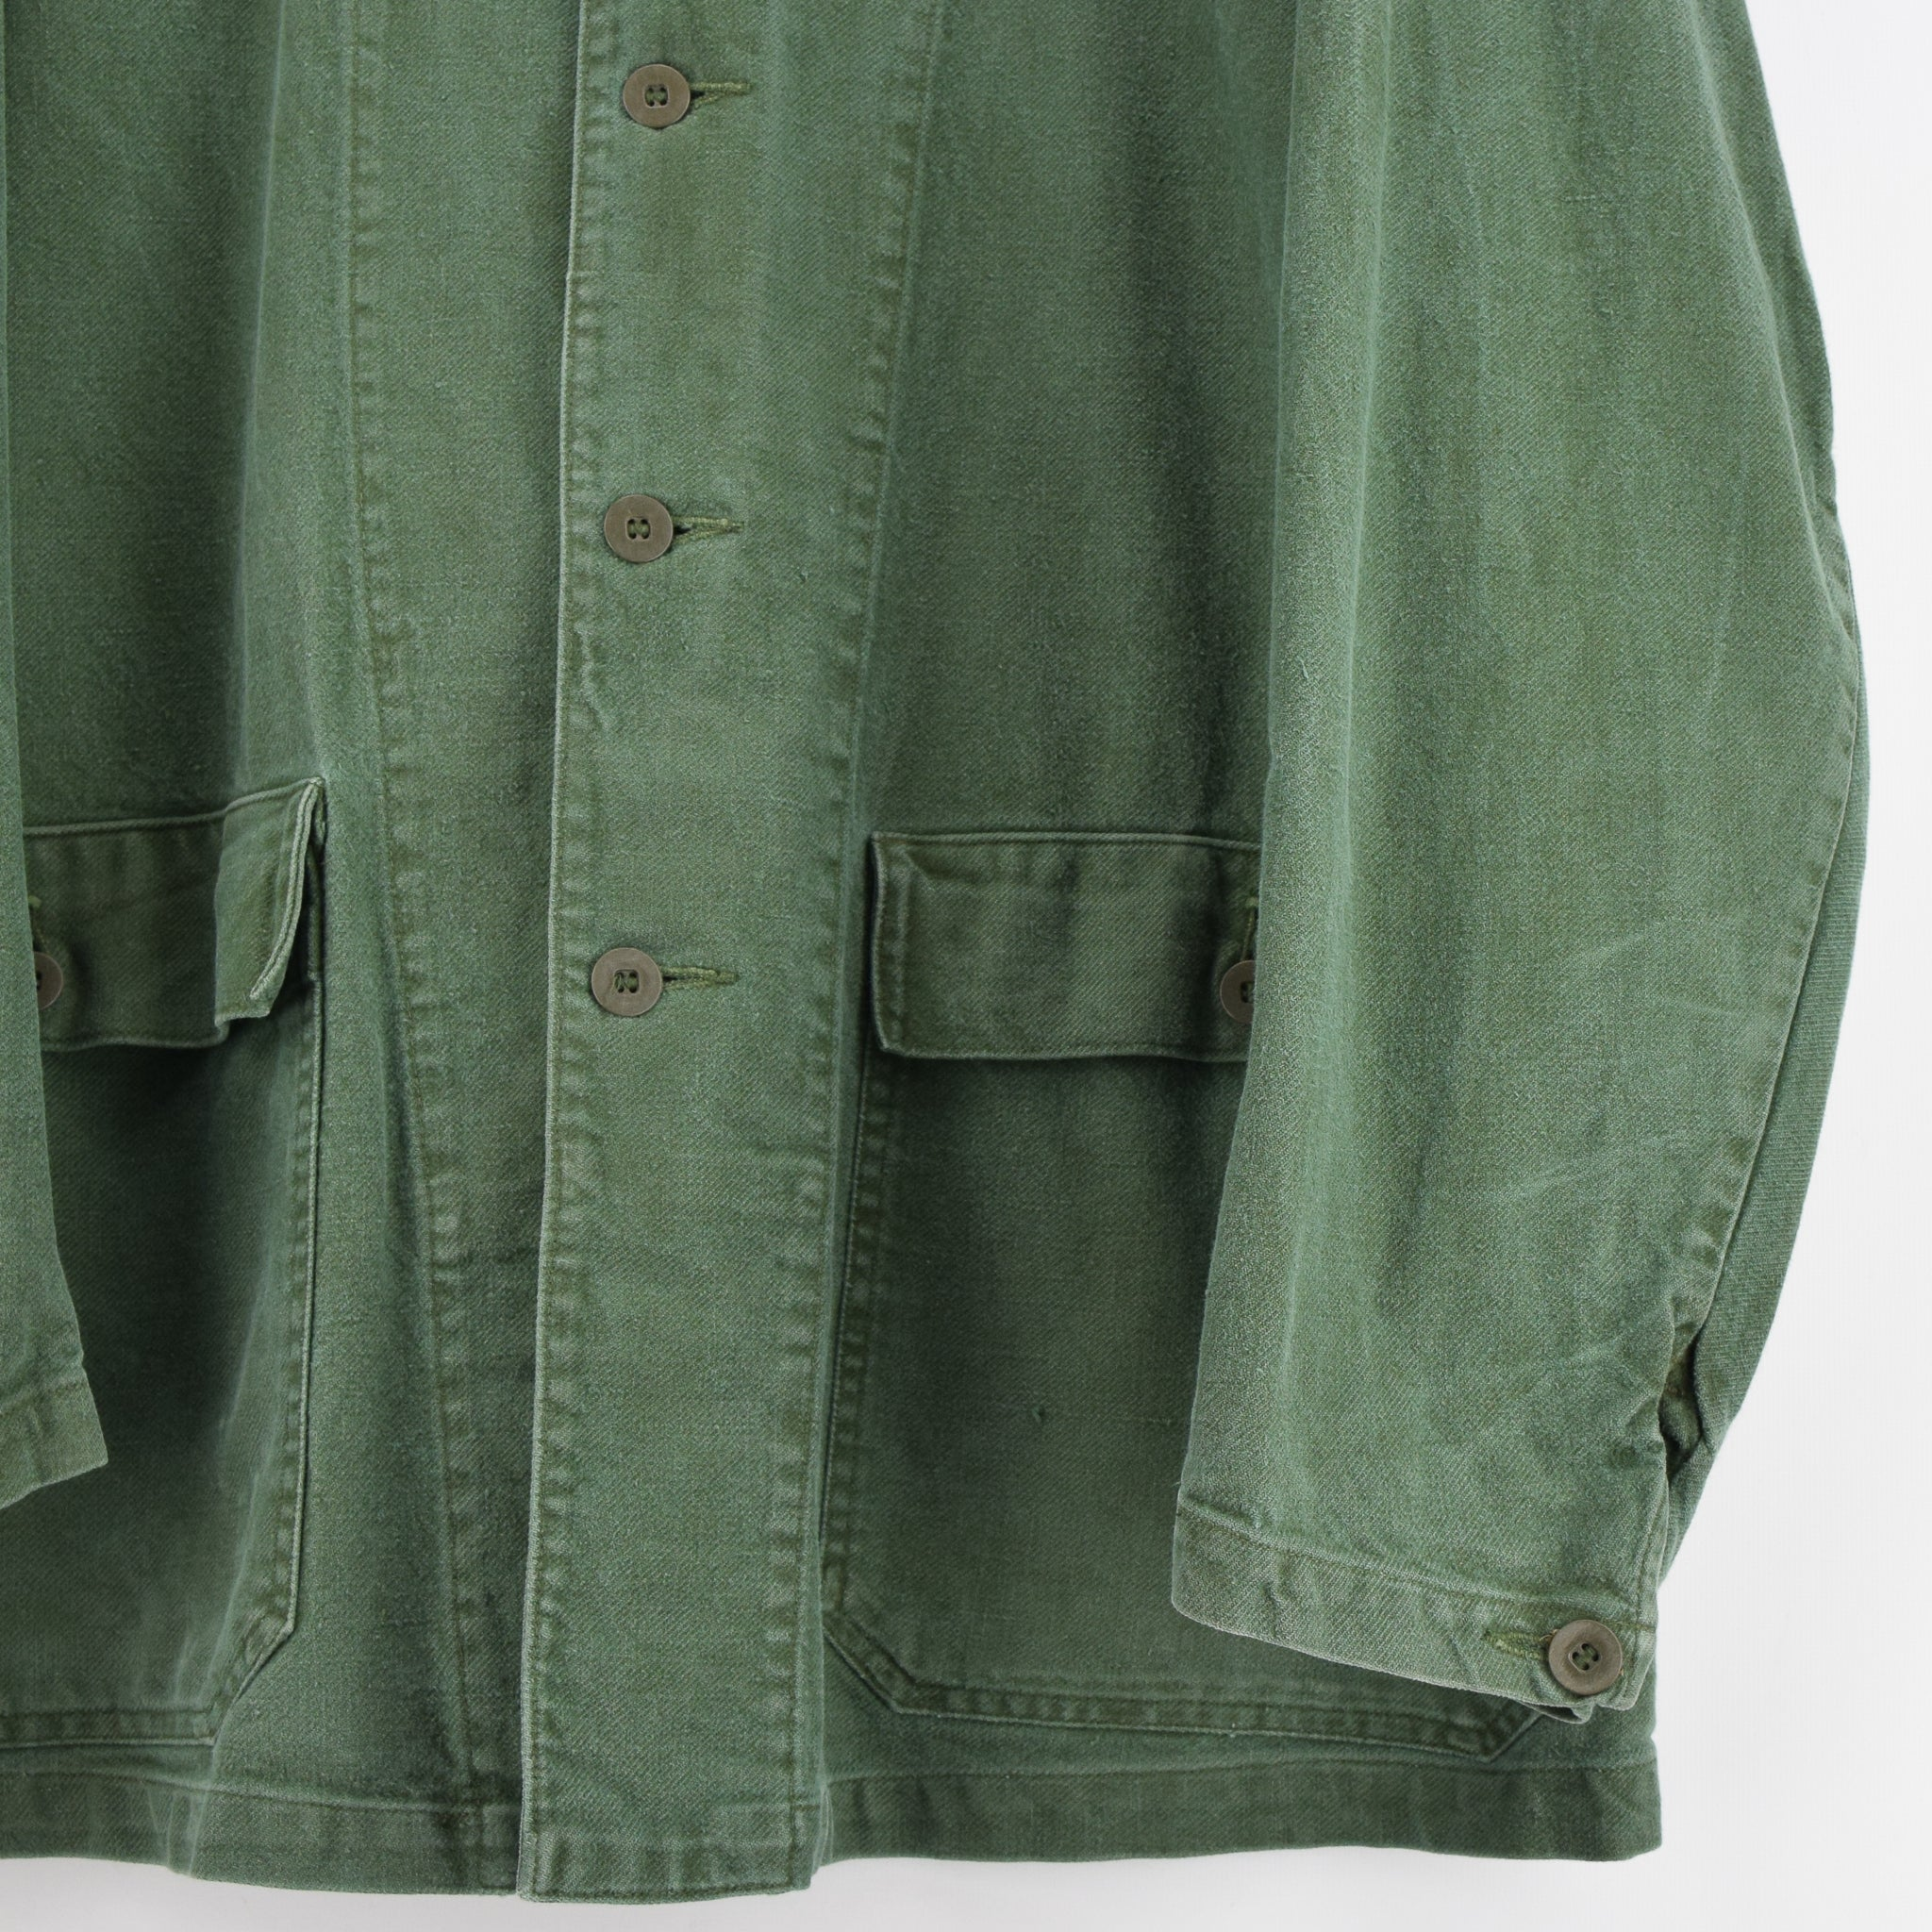 Vintage Swedish Worker Style Green Distressed Military Cotton Field Jacket L front hem